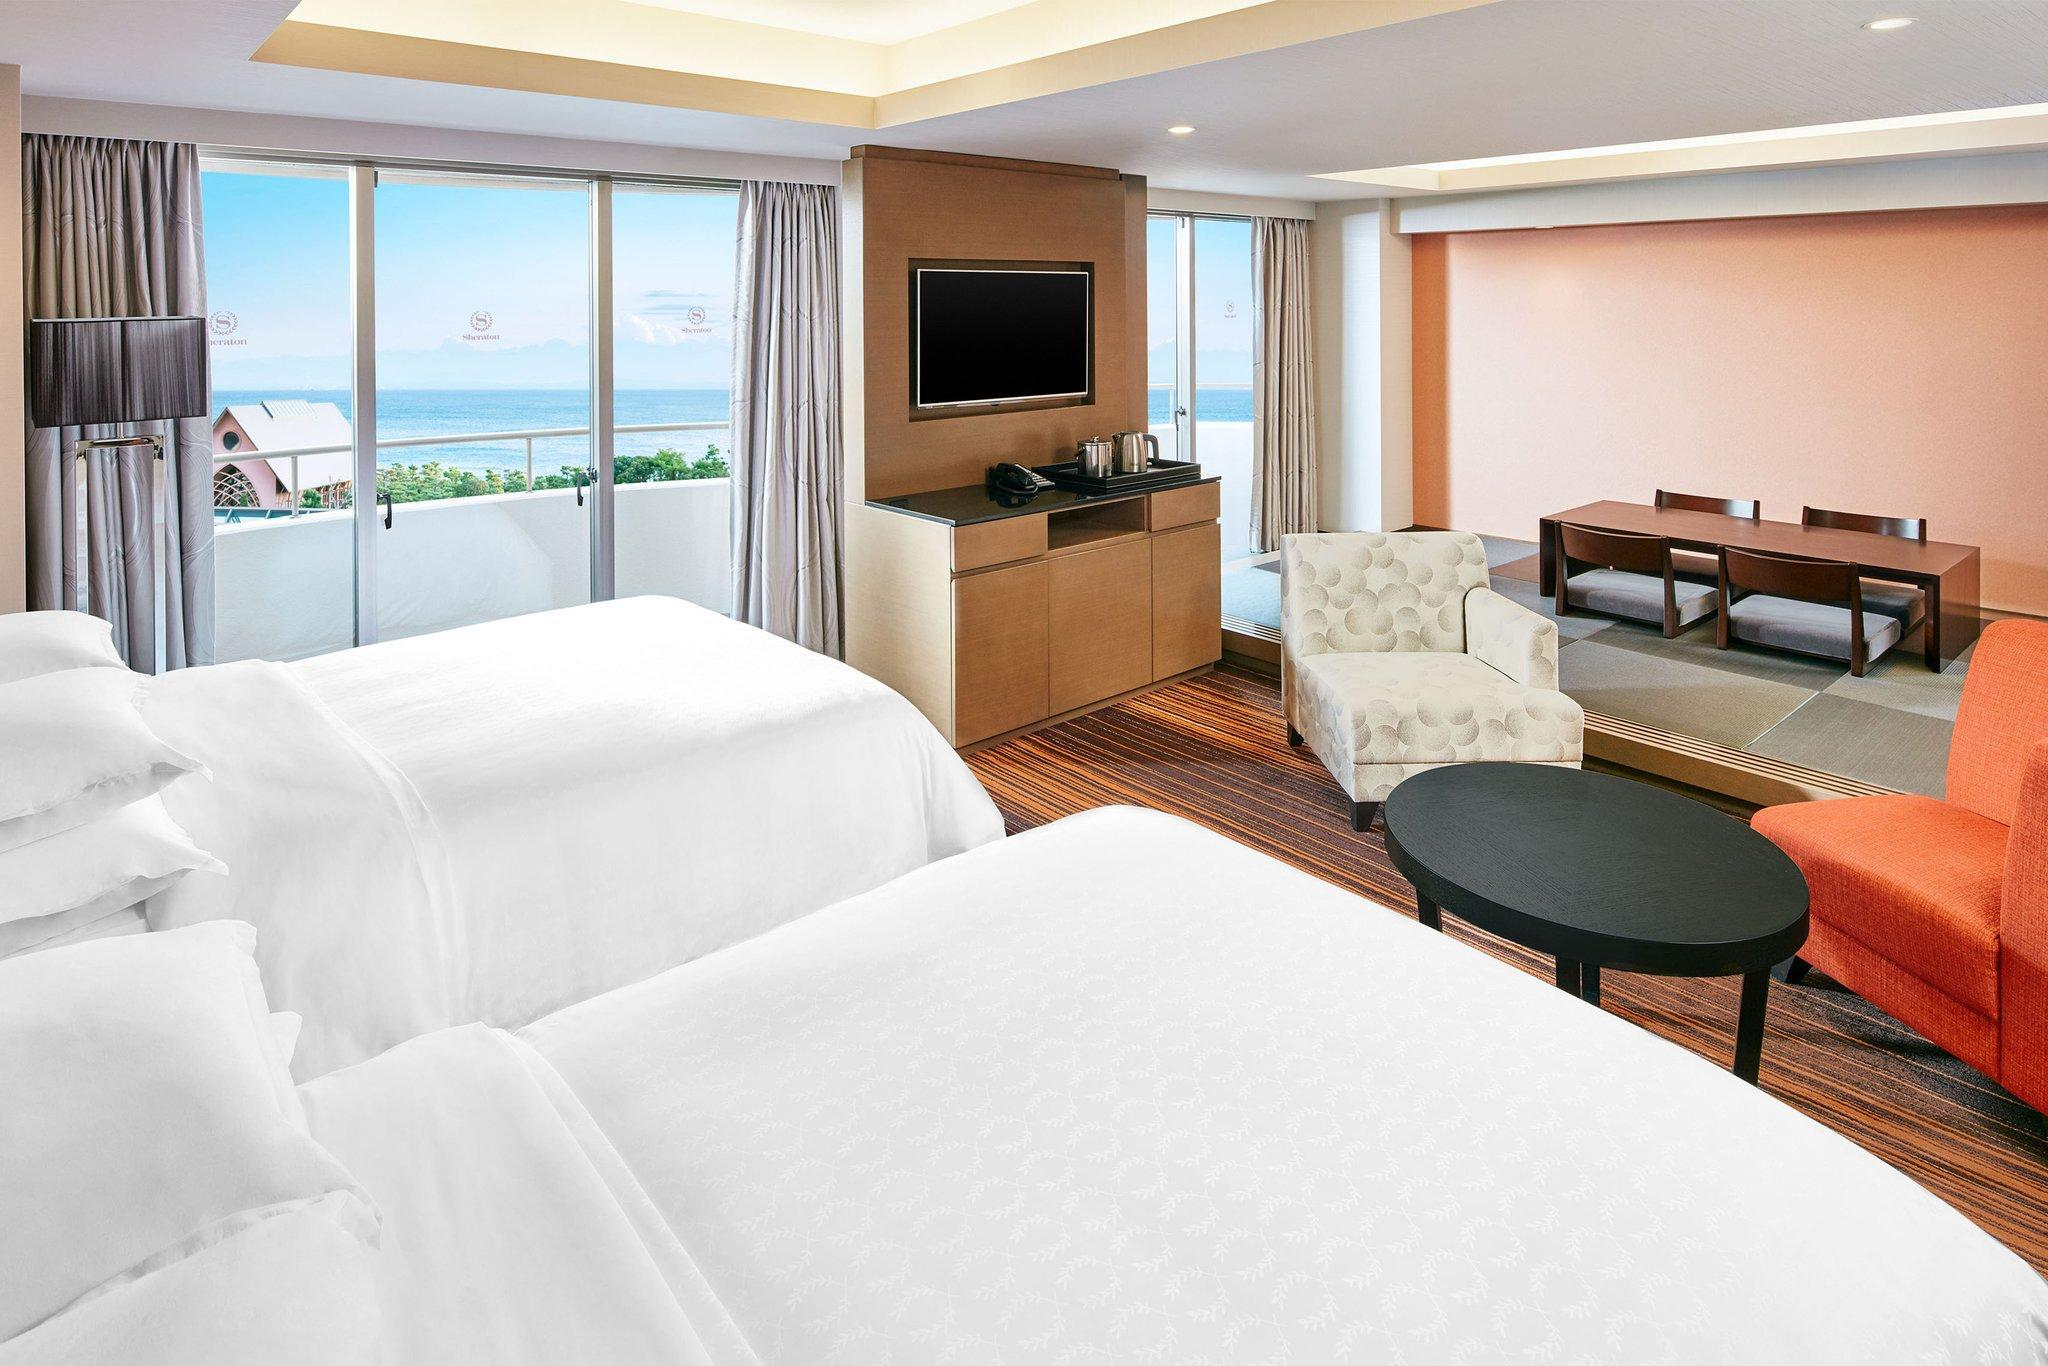 Japanese Suite 6 beds, Club lounge access, 1 Bedroom Suite